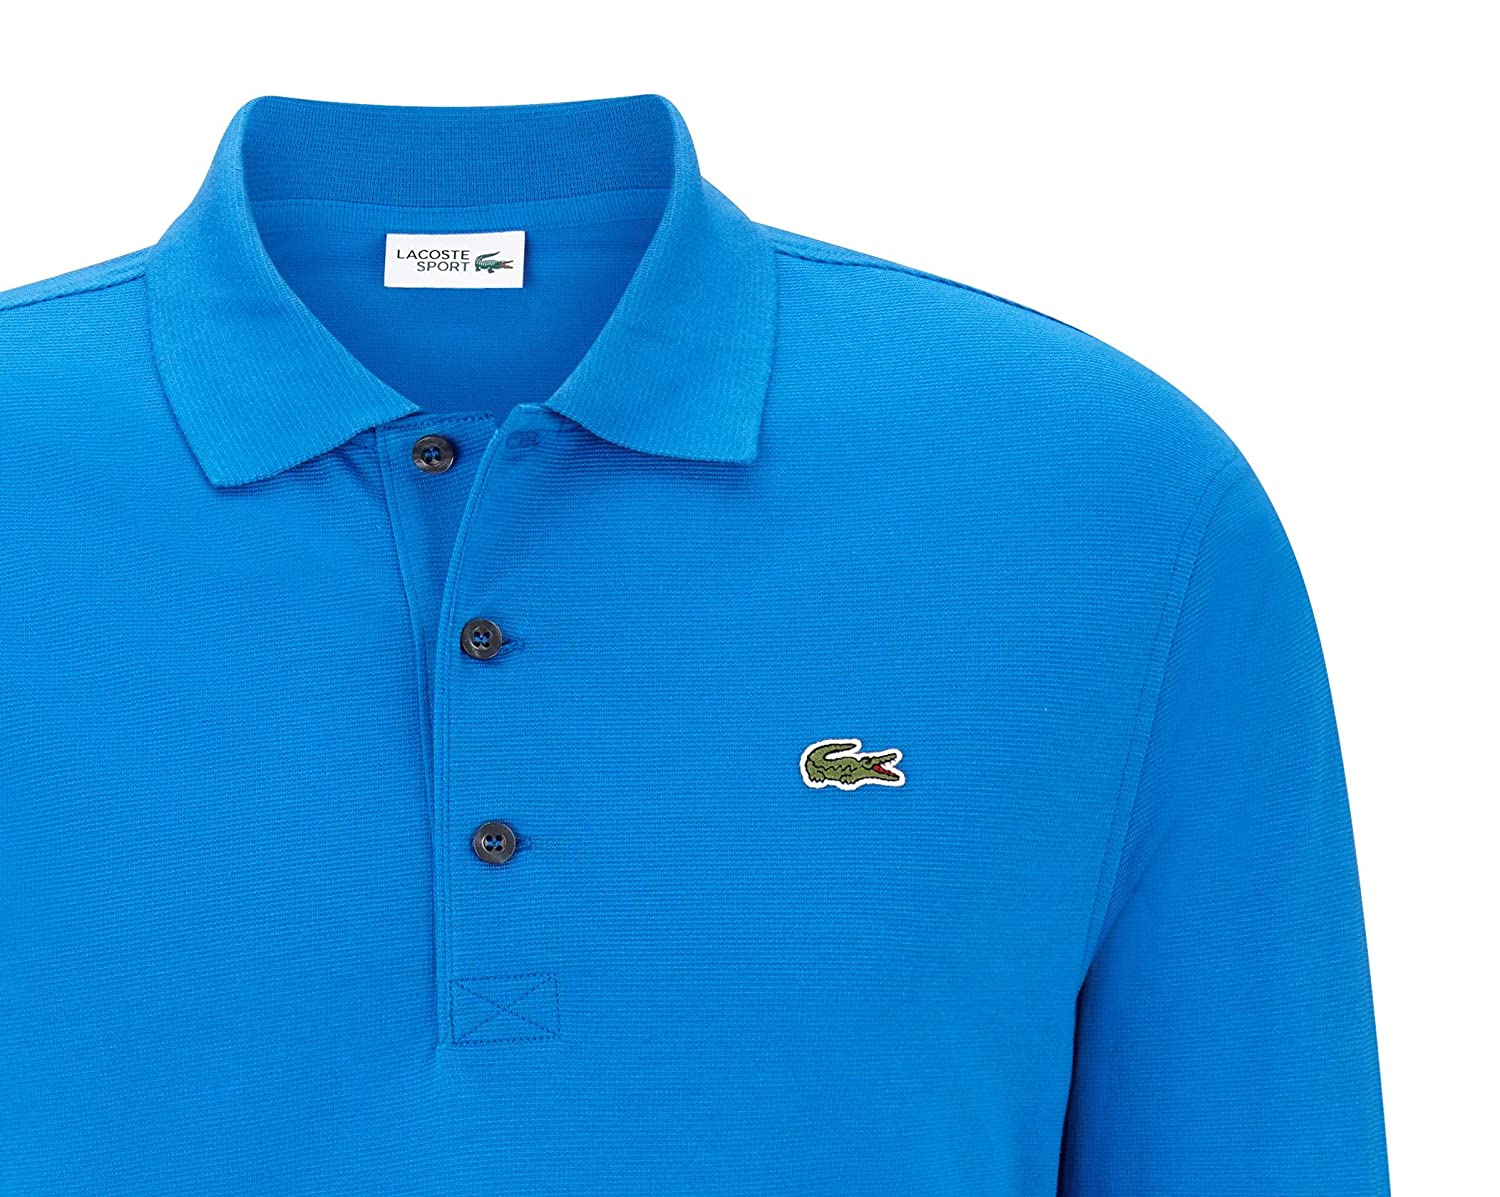 a7cf41872 Lacoste Polo Shirt Sports Direct